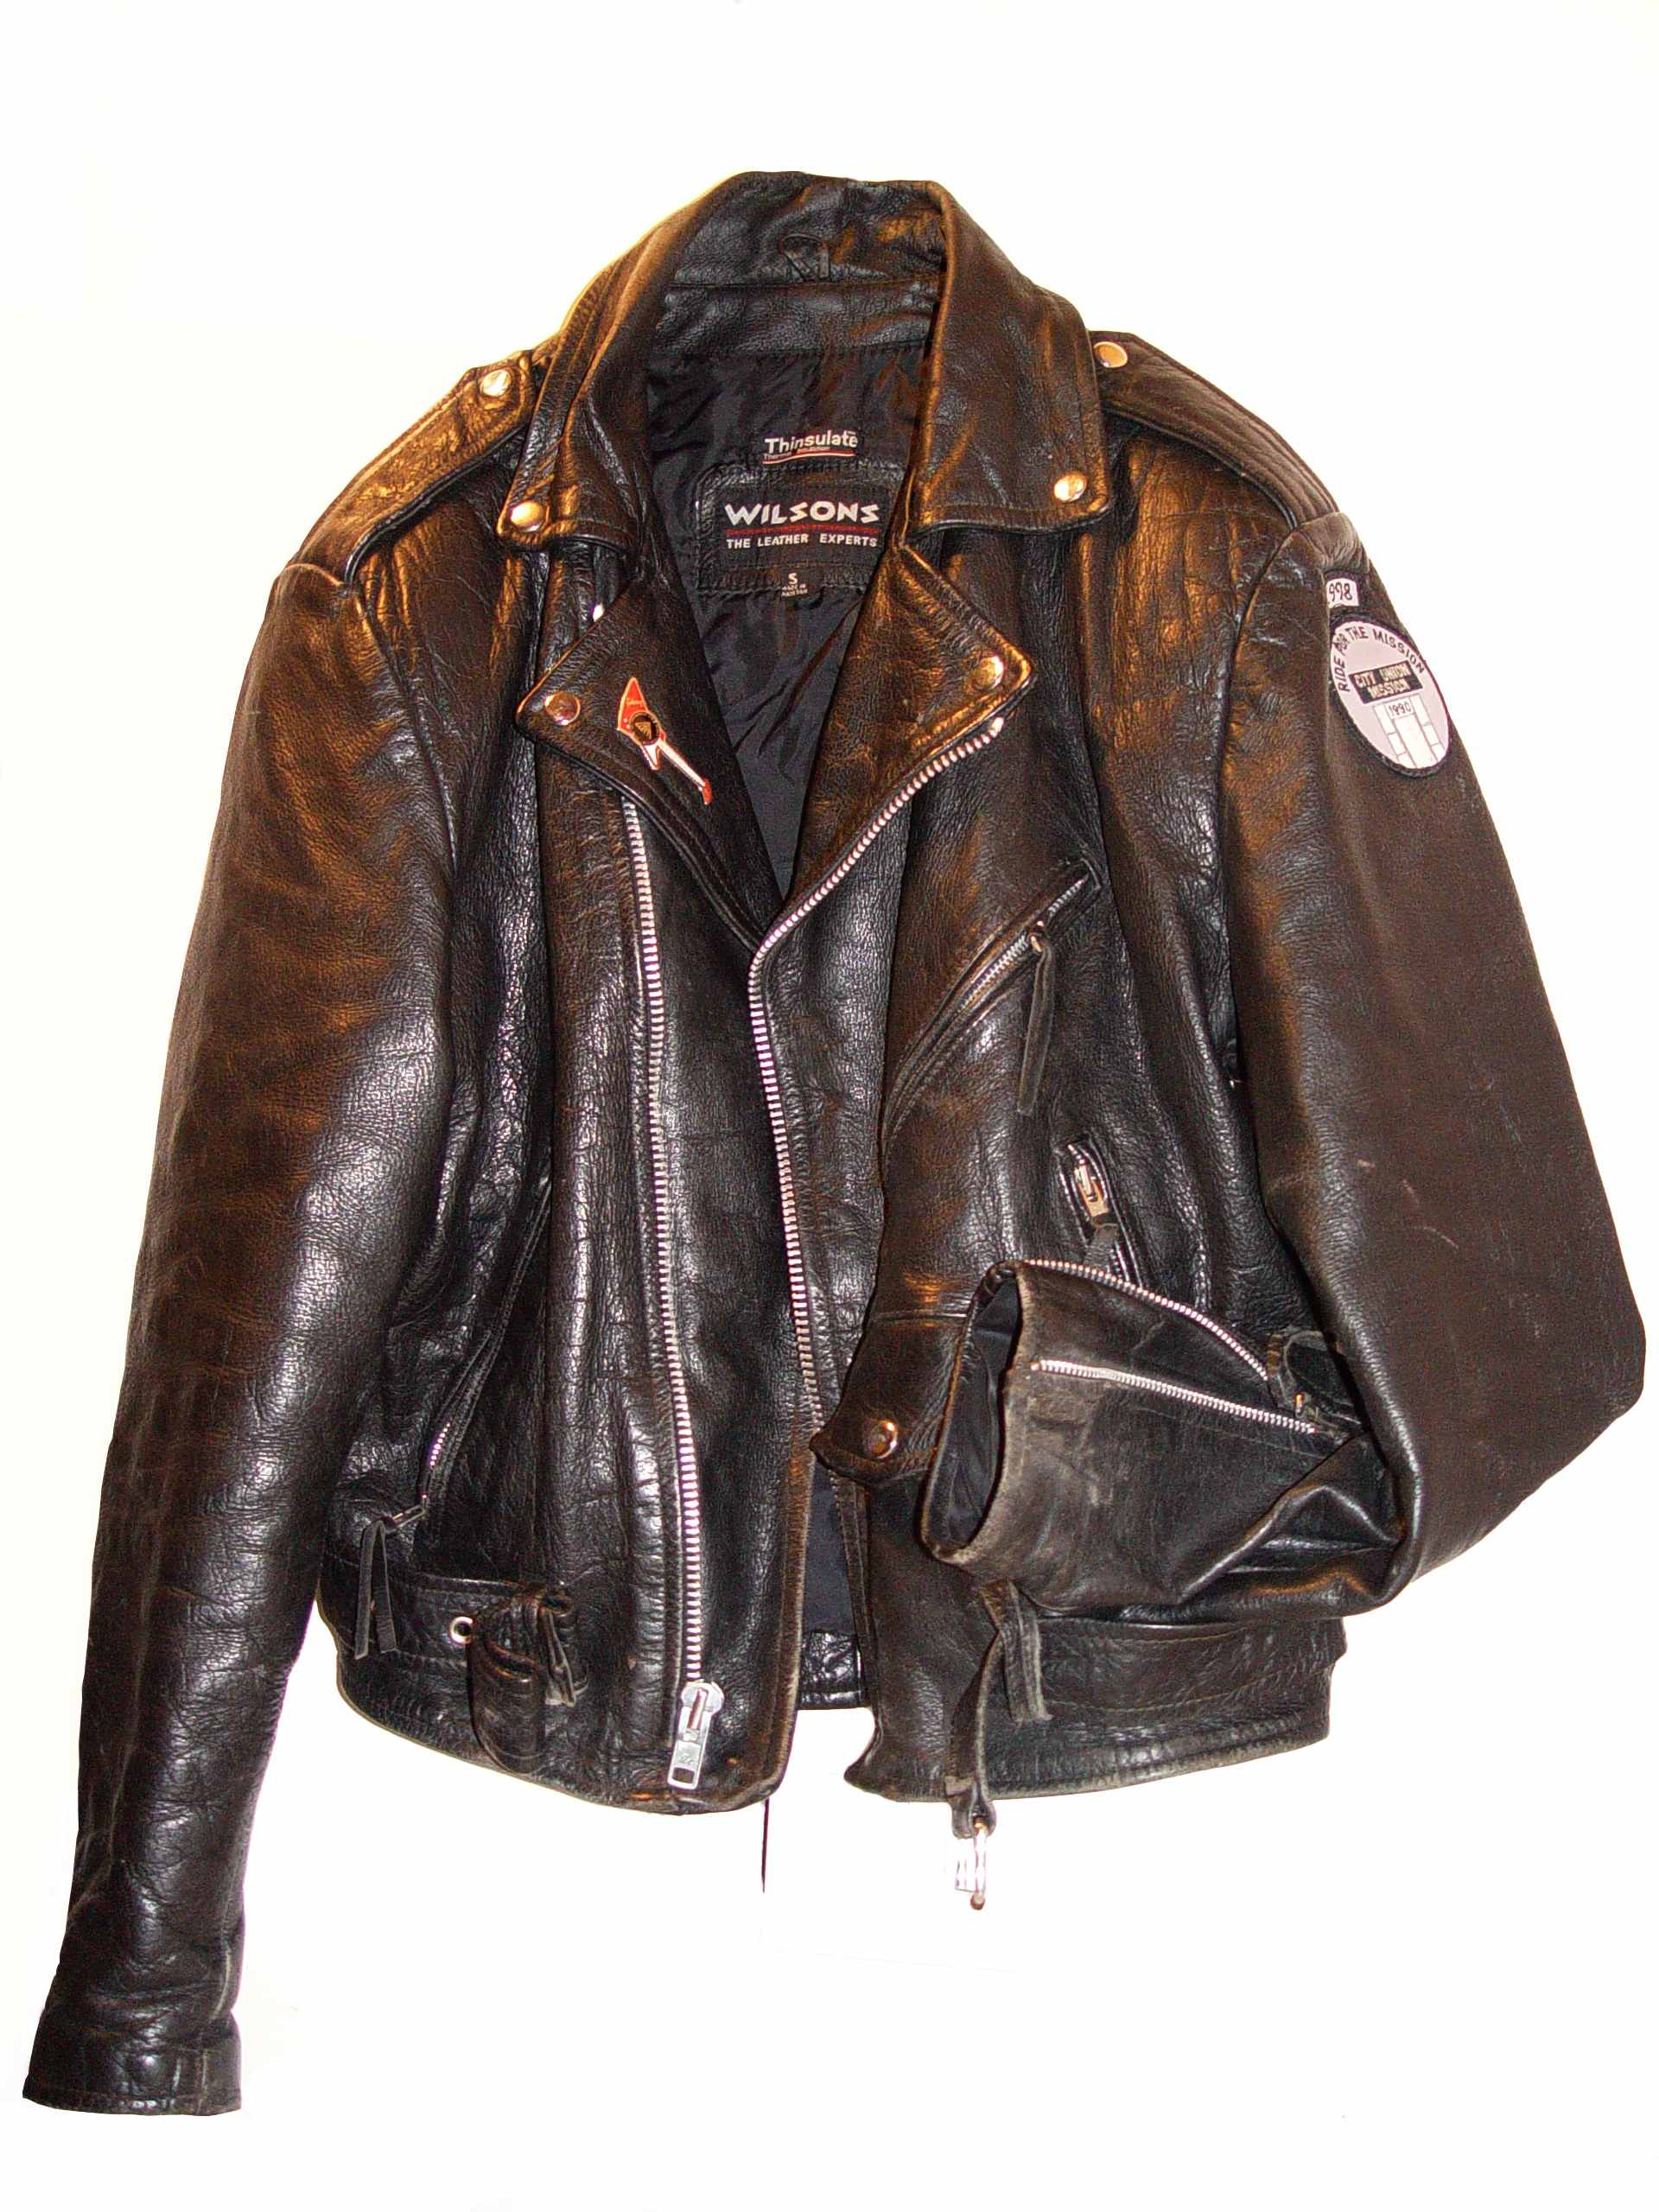 How to make leather jackets